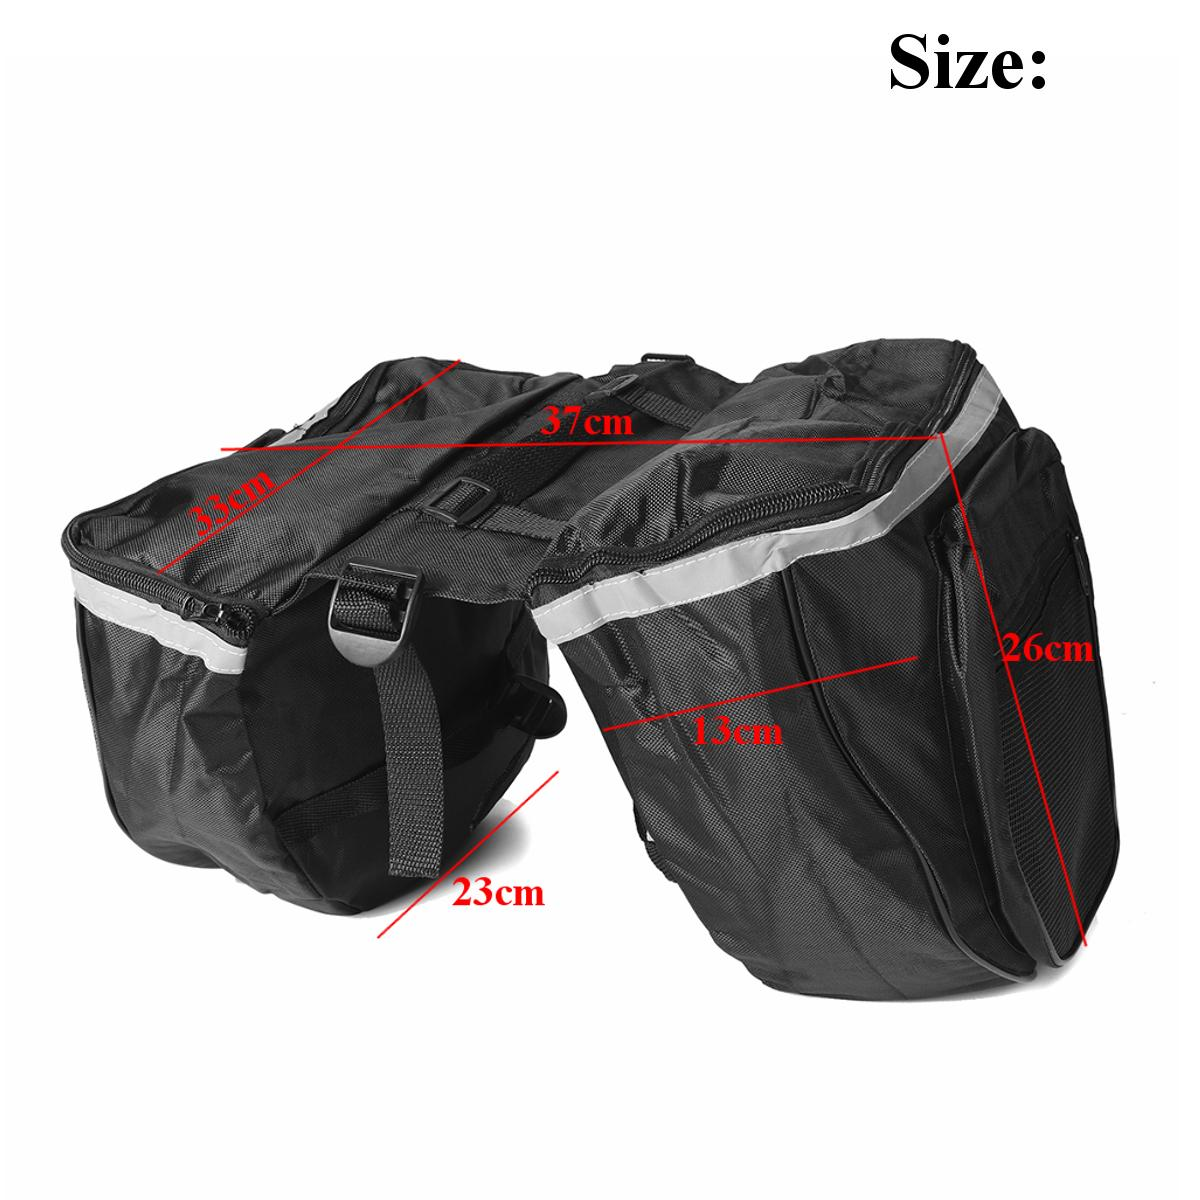 Flameer Motorcycle Riding Rear Seat Super Light Tail Side Bag Trunk Luggage Large Capacity for Biker Black